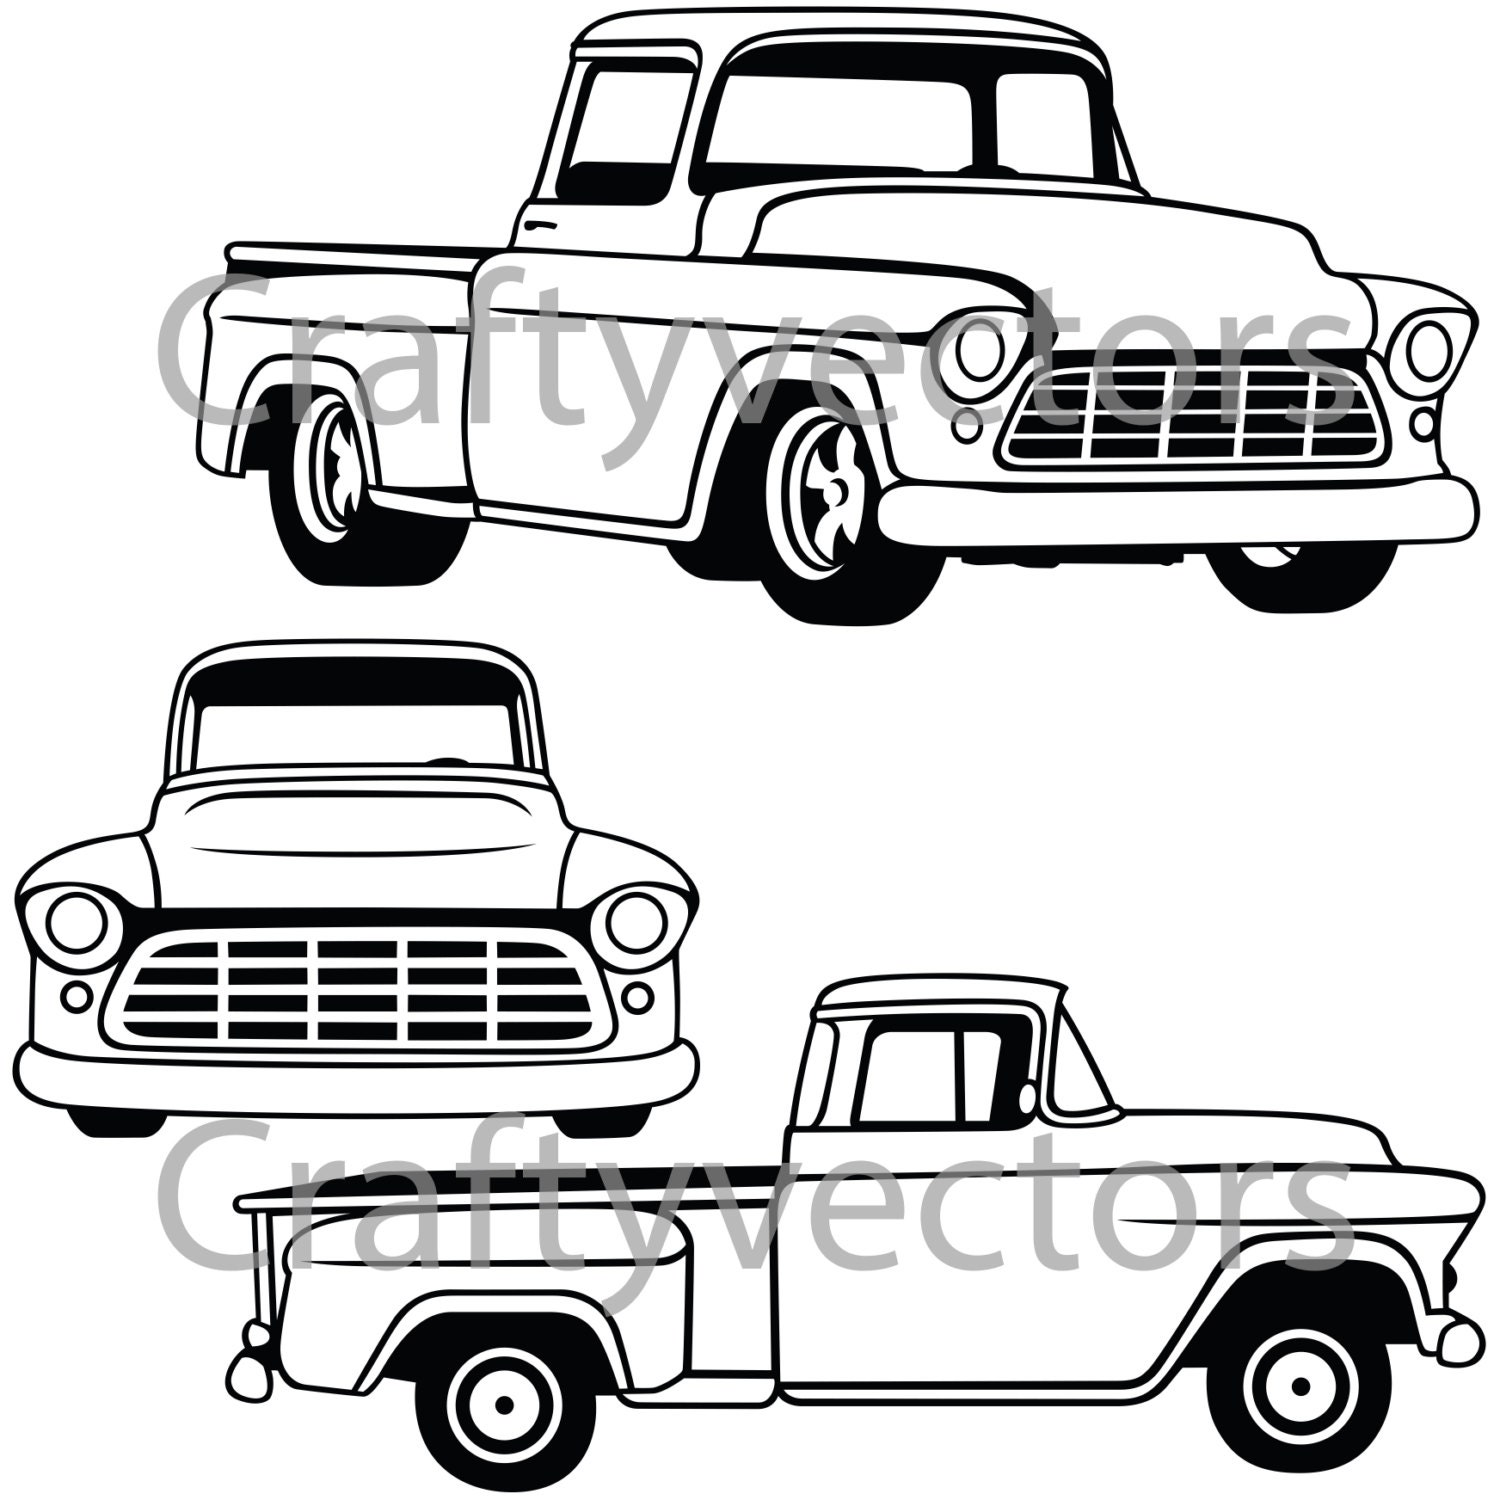 chevy truck vector images